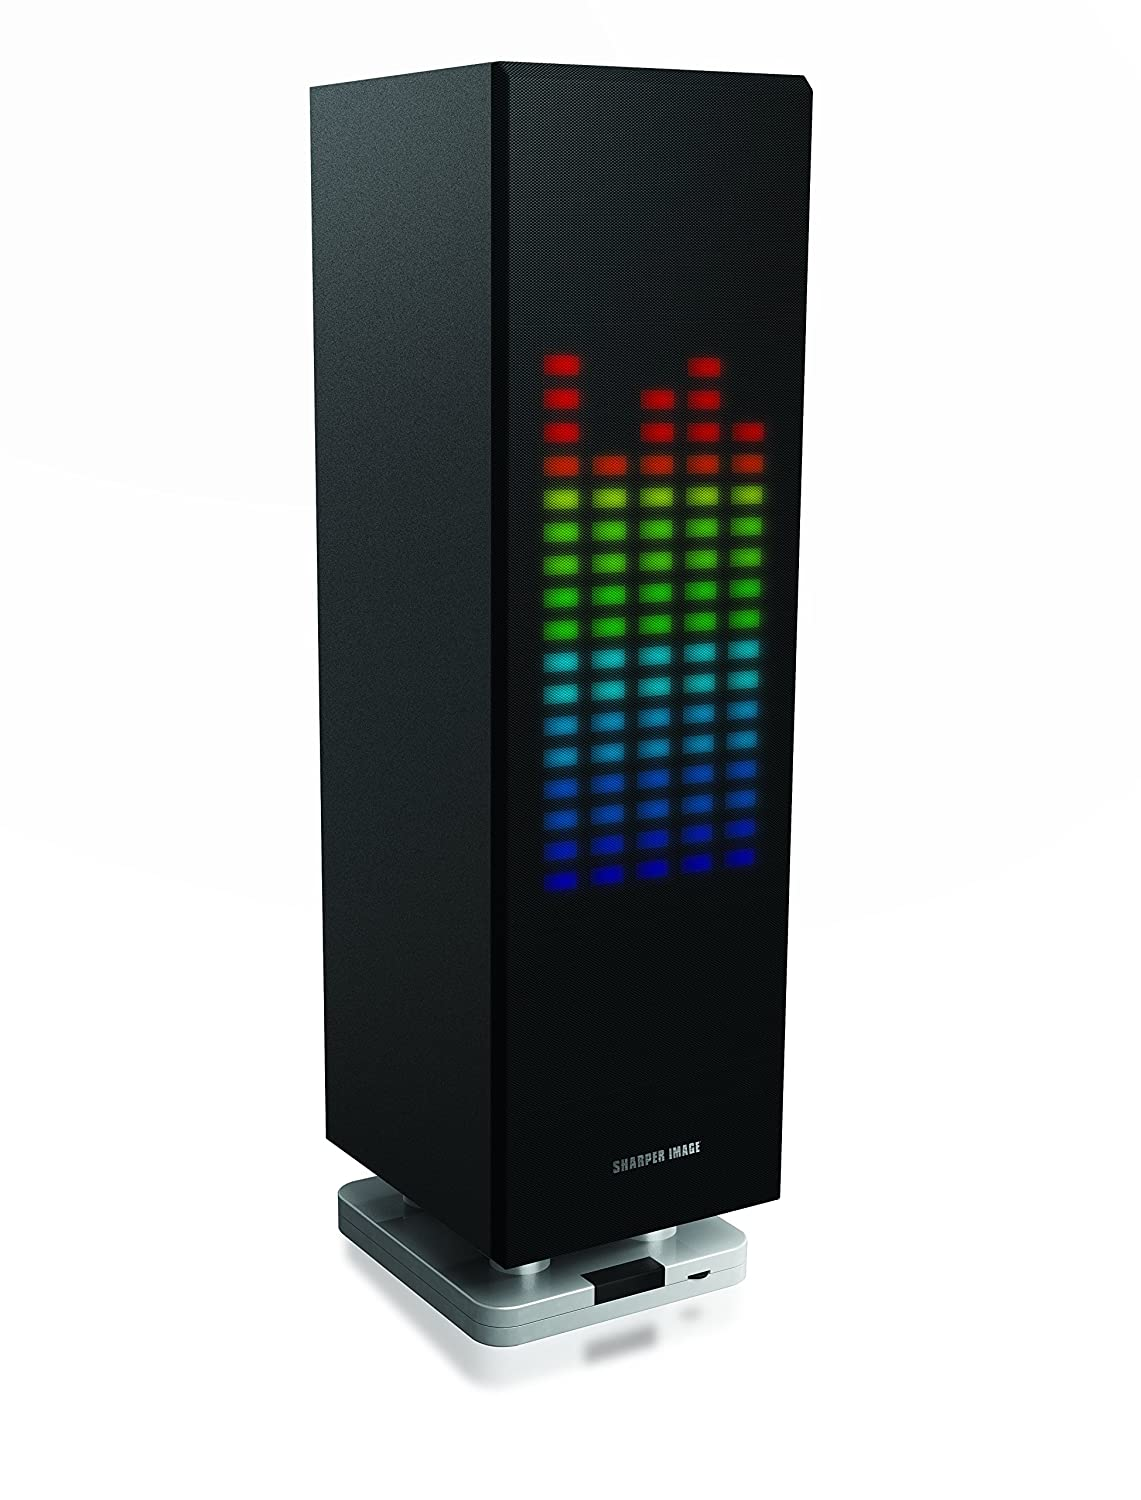 Amazon.com: Sharper Image SBT1003BK Bluetooth Speaker with Lights, Beat Responsive Sound System, Mini Tower, LED Light Show: Home Audio & Theater